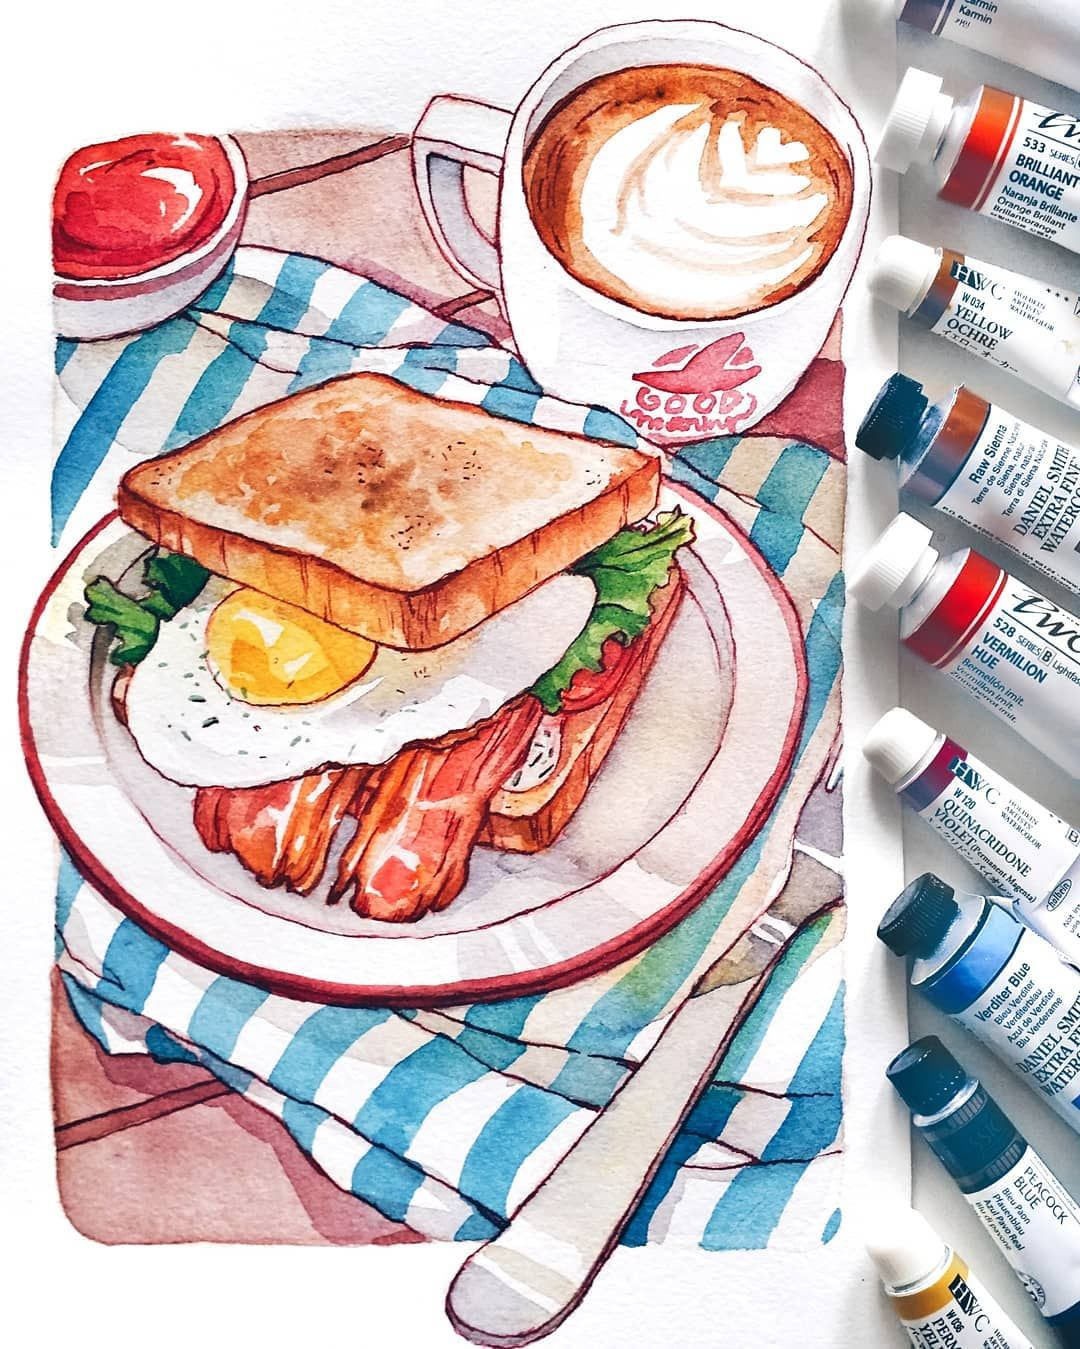 """Ashiya Kisa on Instagram: """"second video in the HUNGRY  series will be this little breakfast sandwich!🍳"""""""